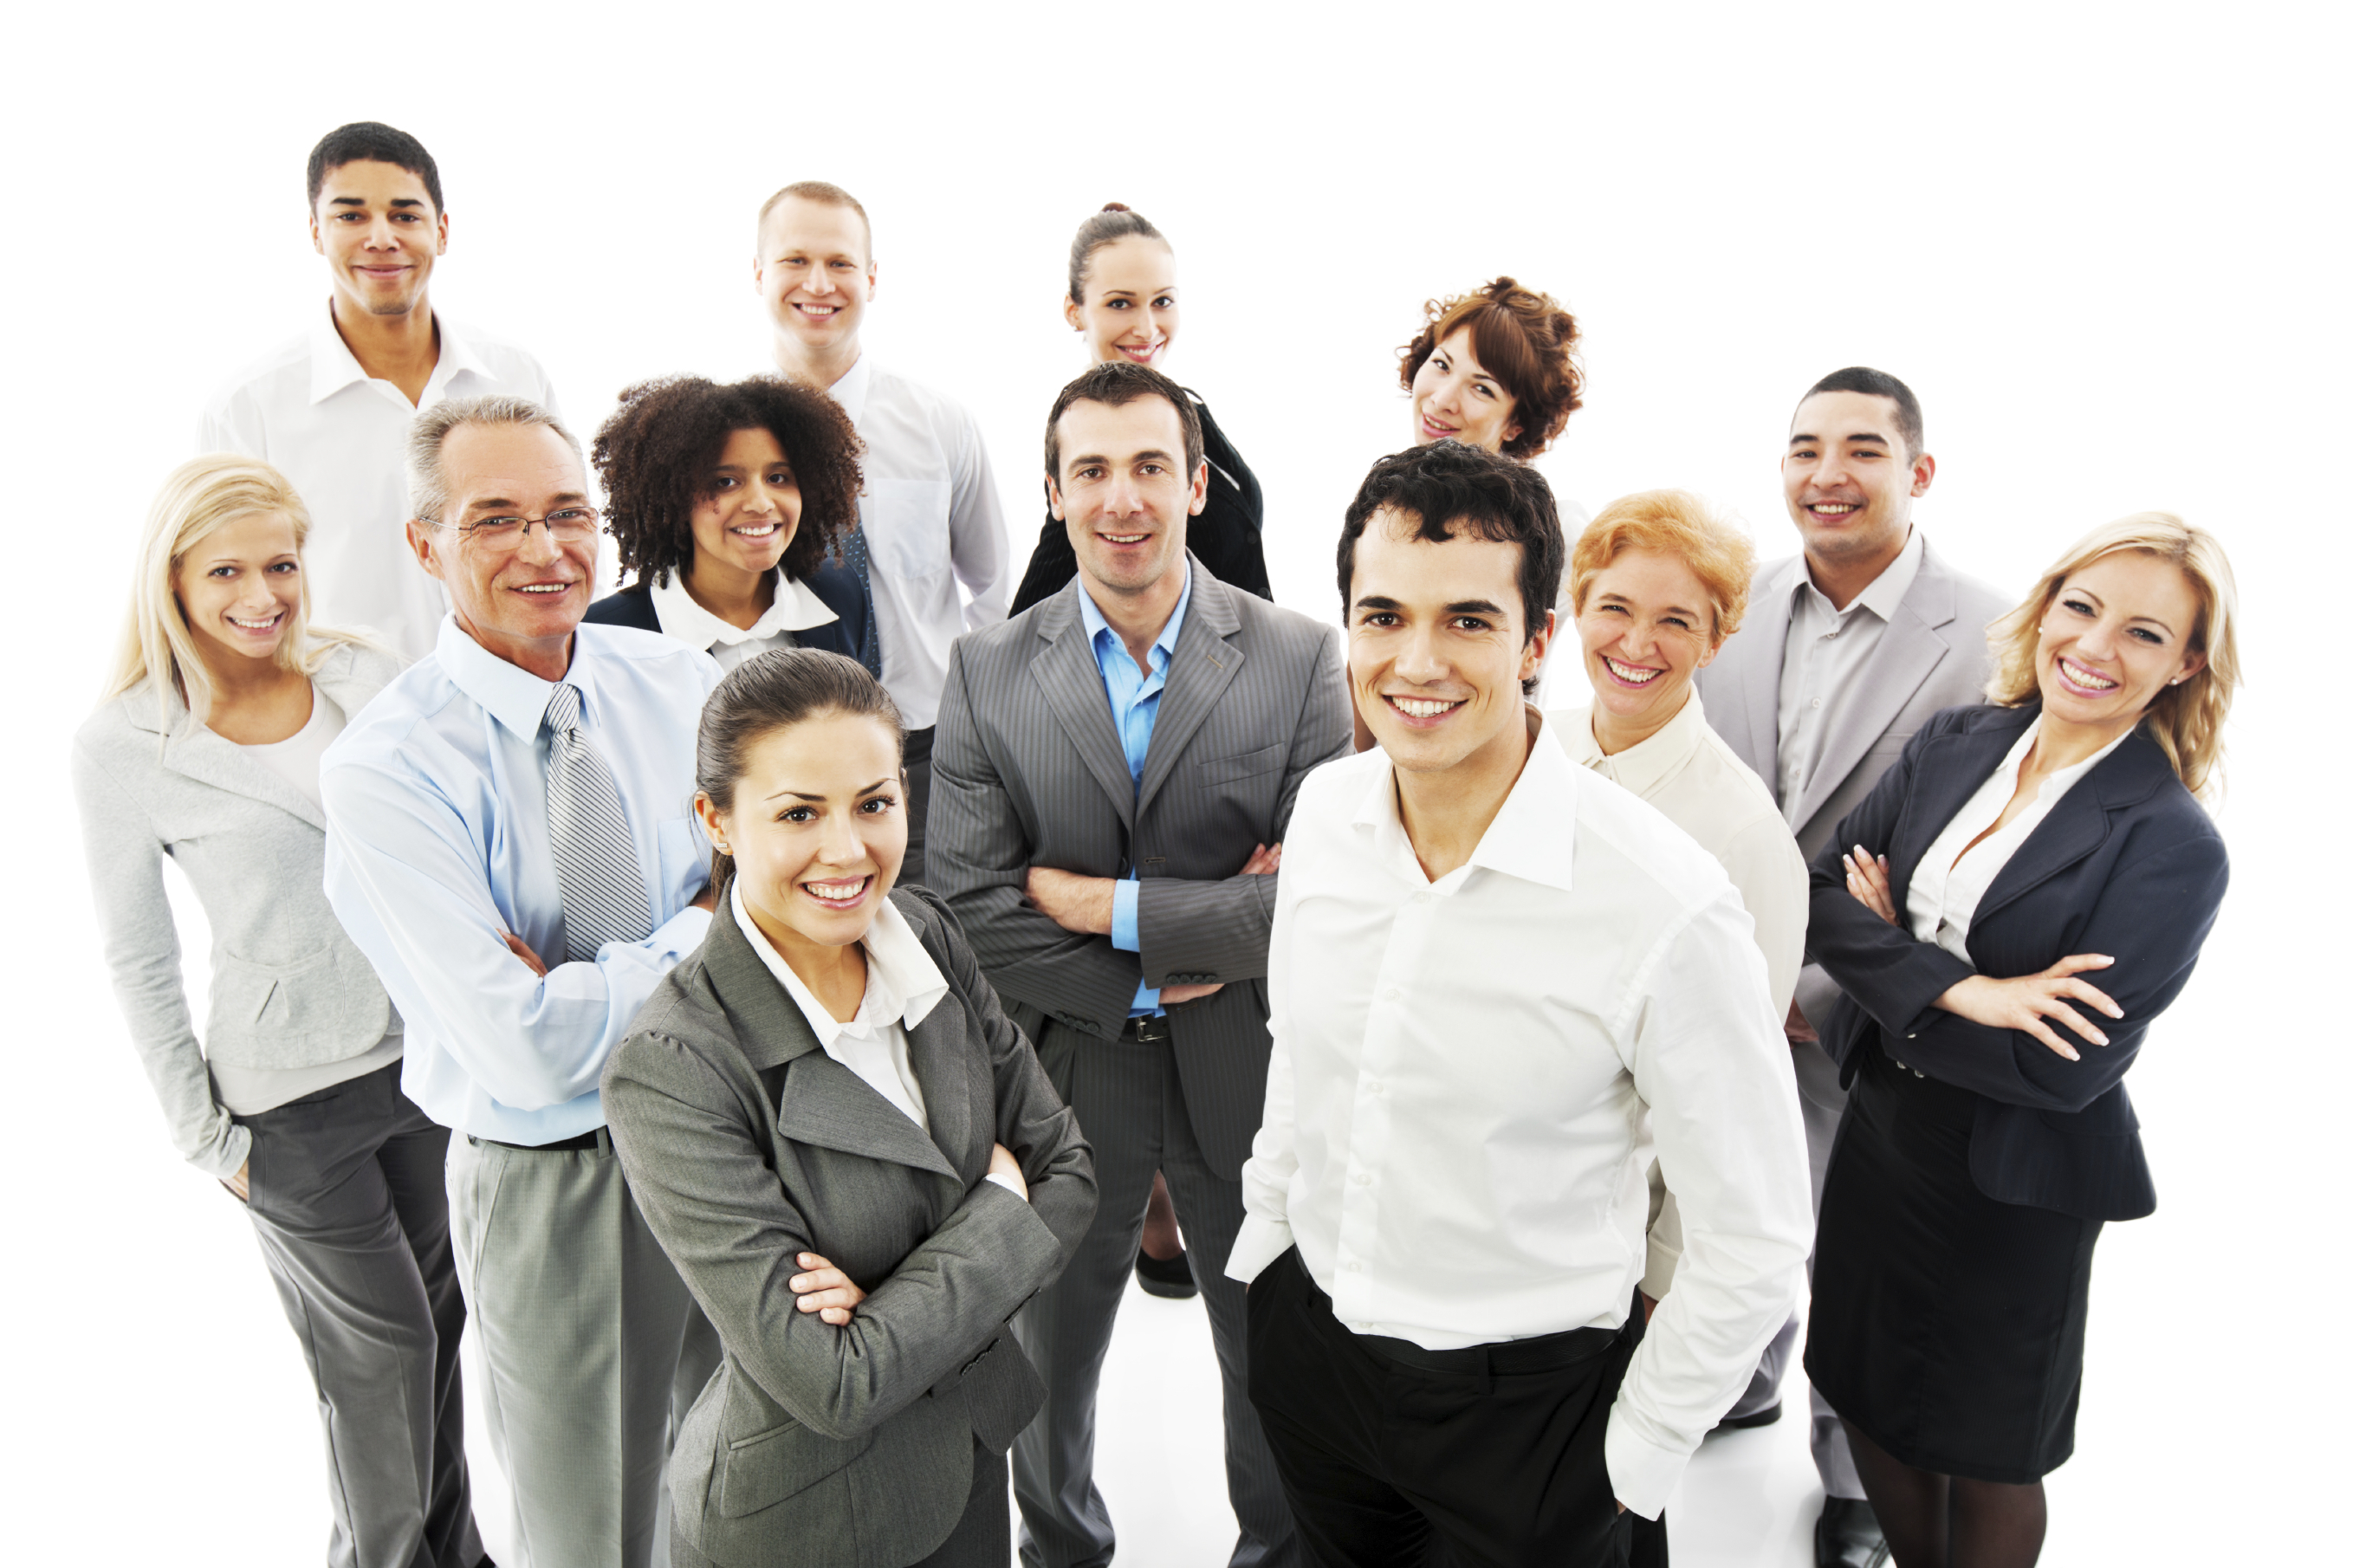 hire a new manager for your company s scandinavian division